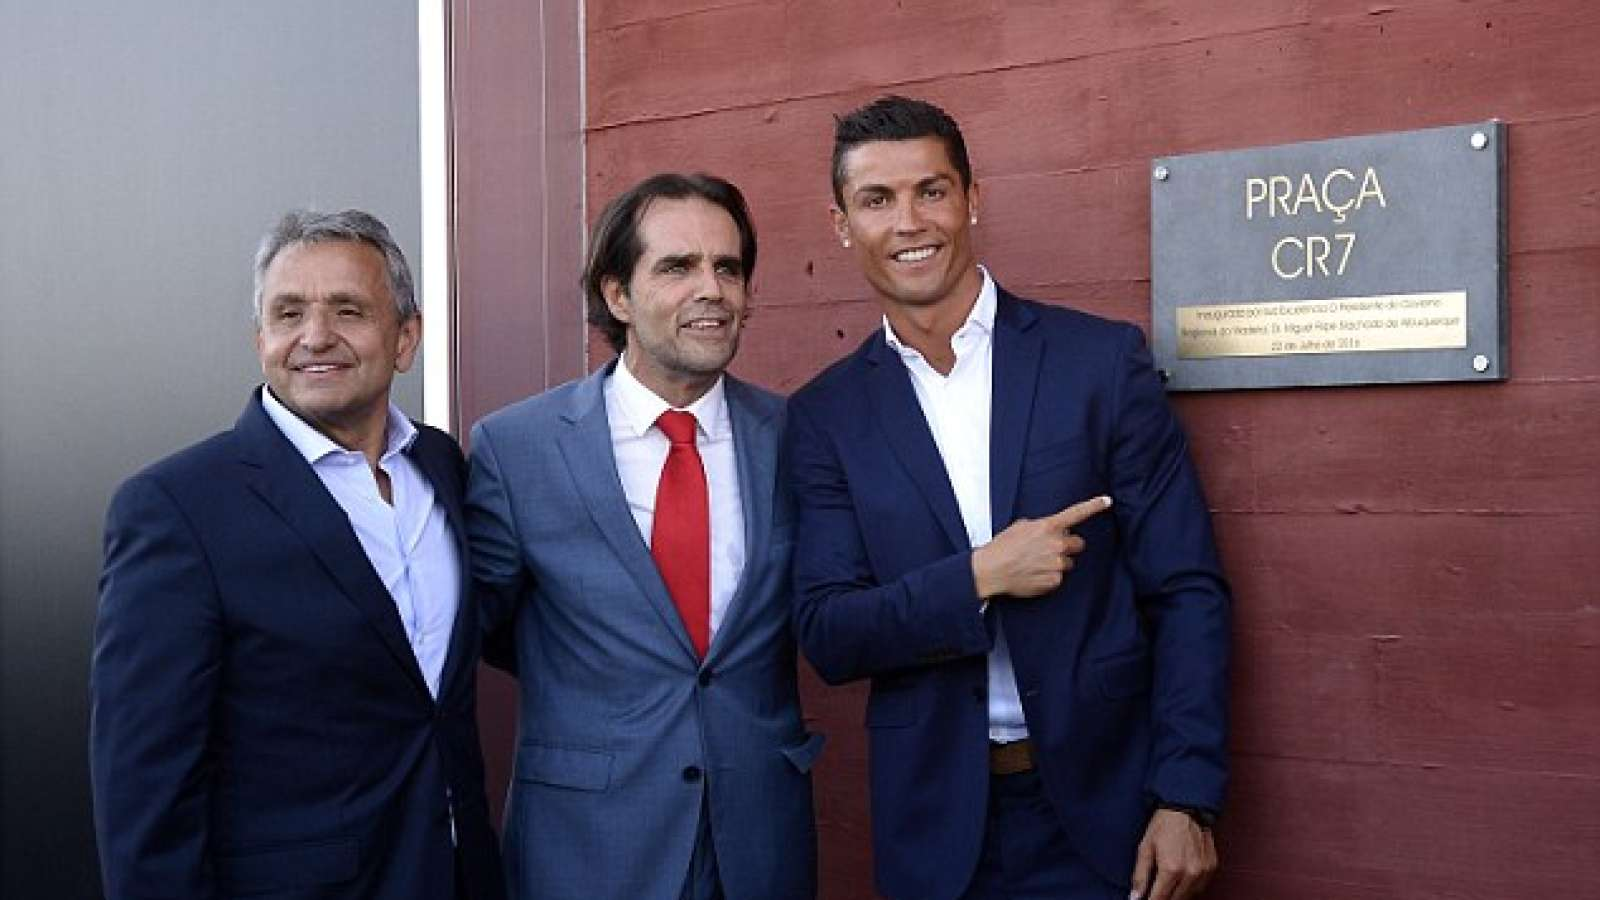 Cristiano Ronaldo branded Ibiza: arriving four new hotels